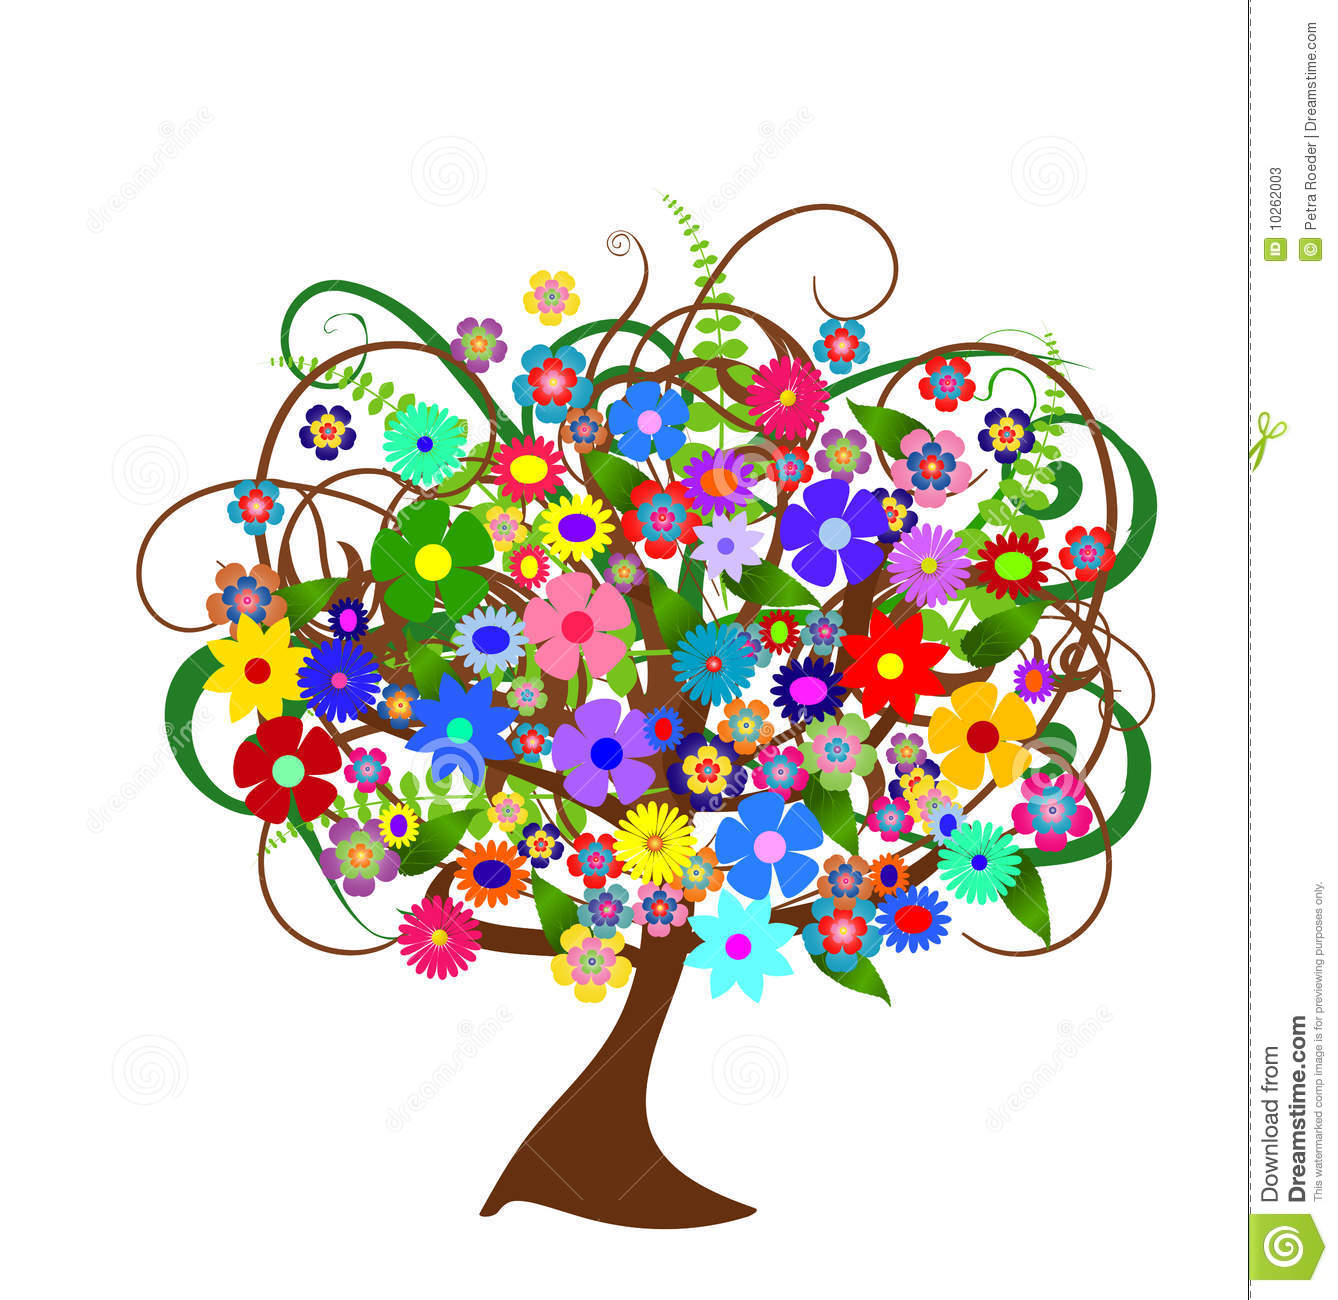 Colorful Abstract Flower Tree Stock Illustration - Image ...